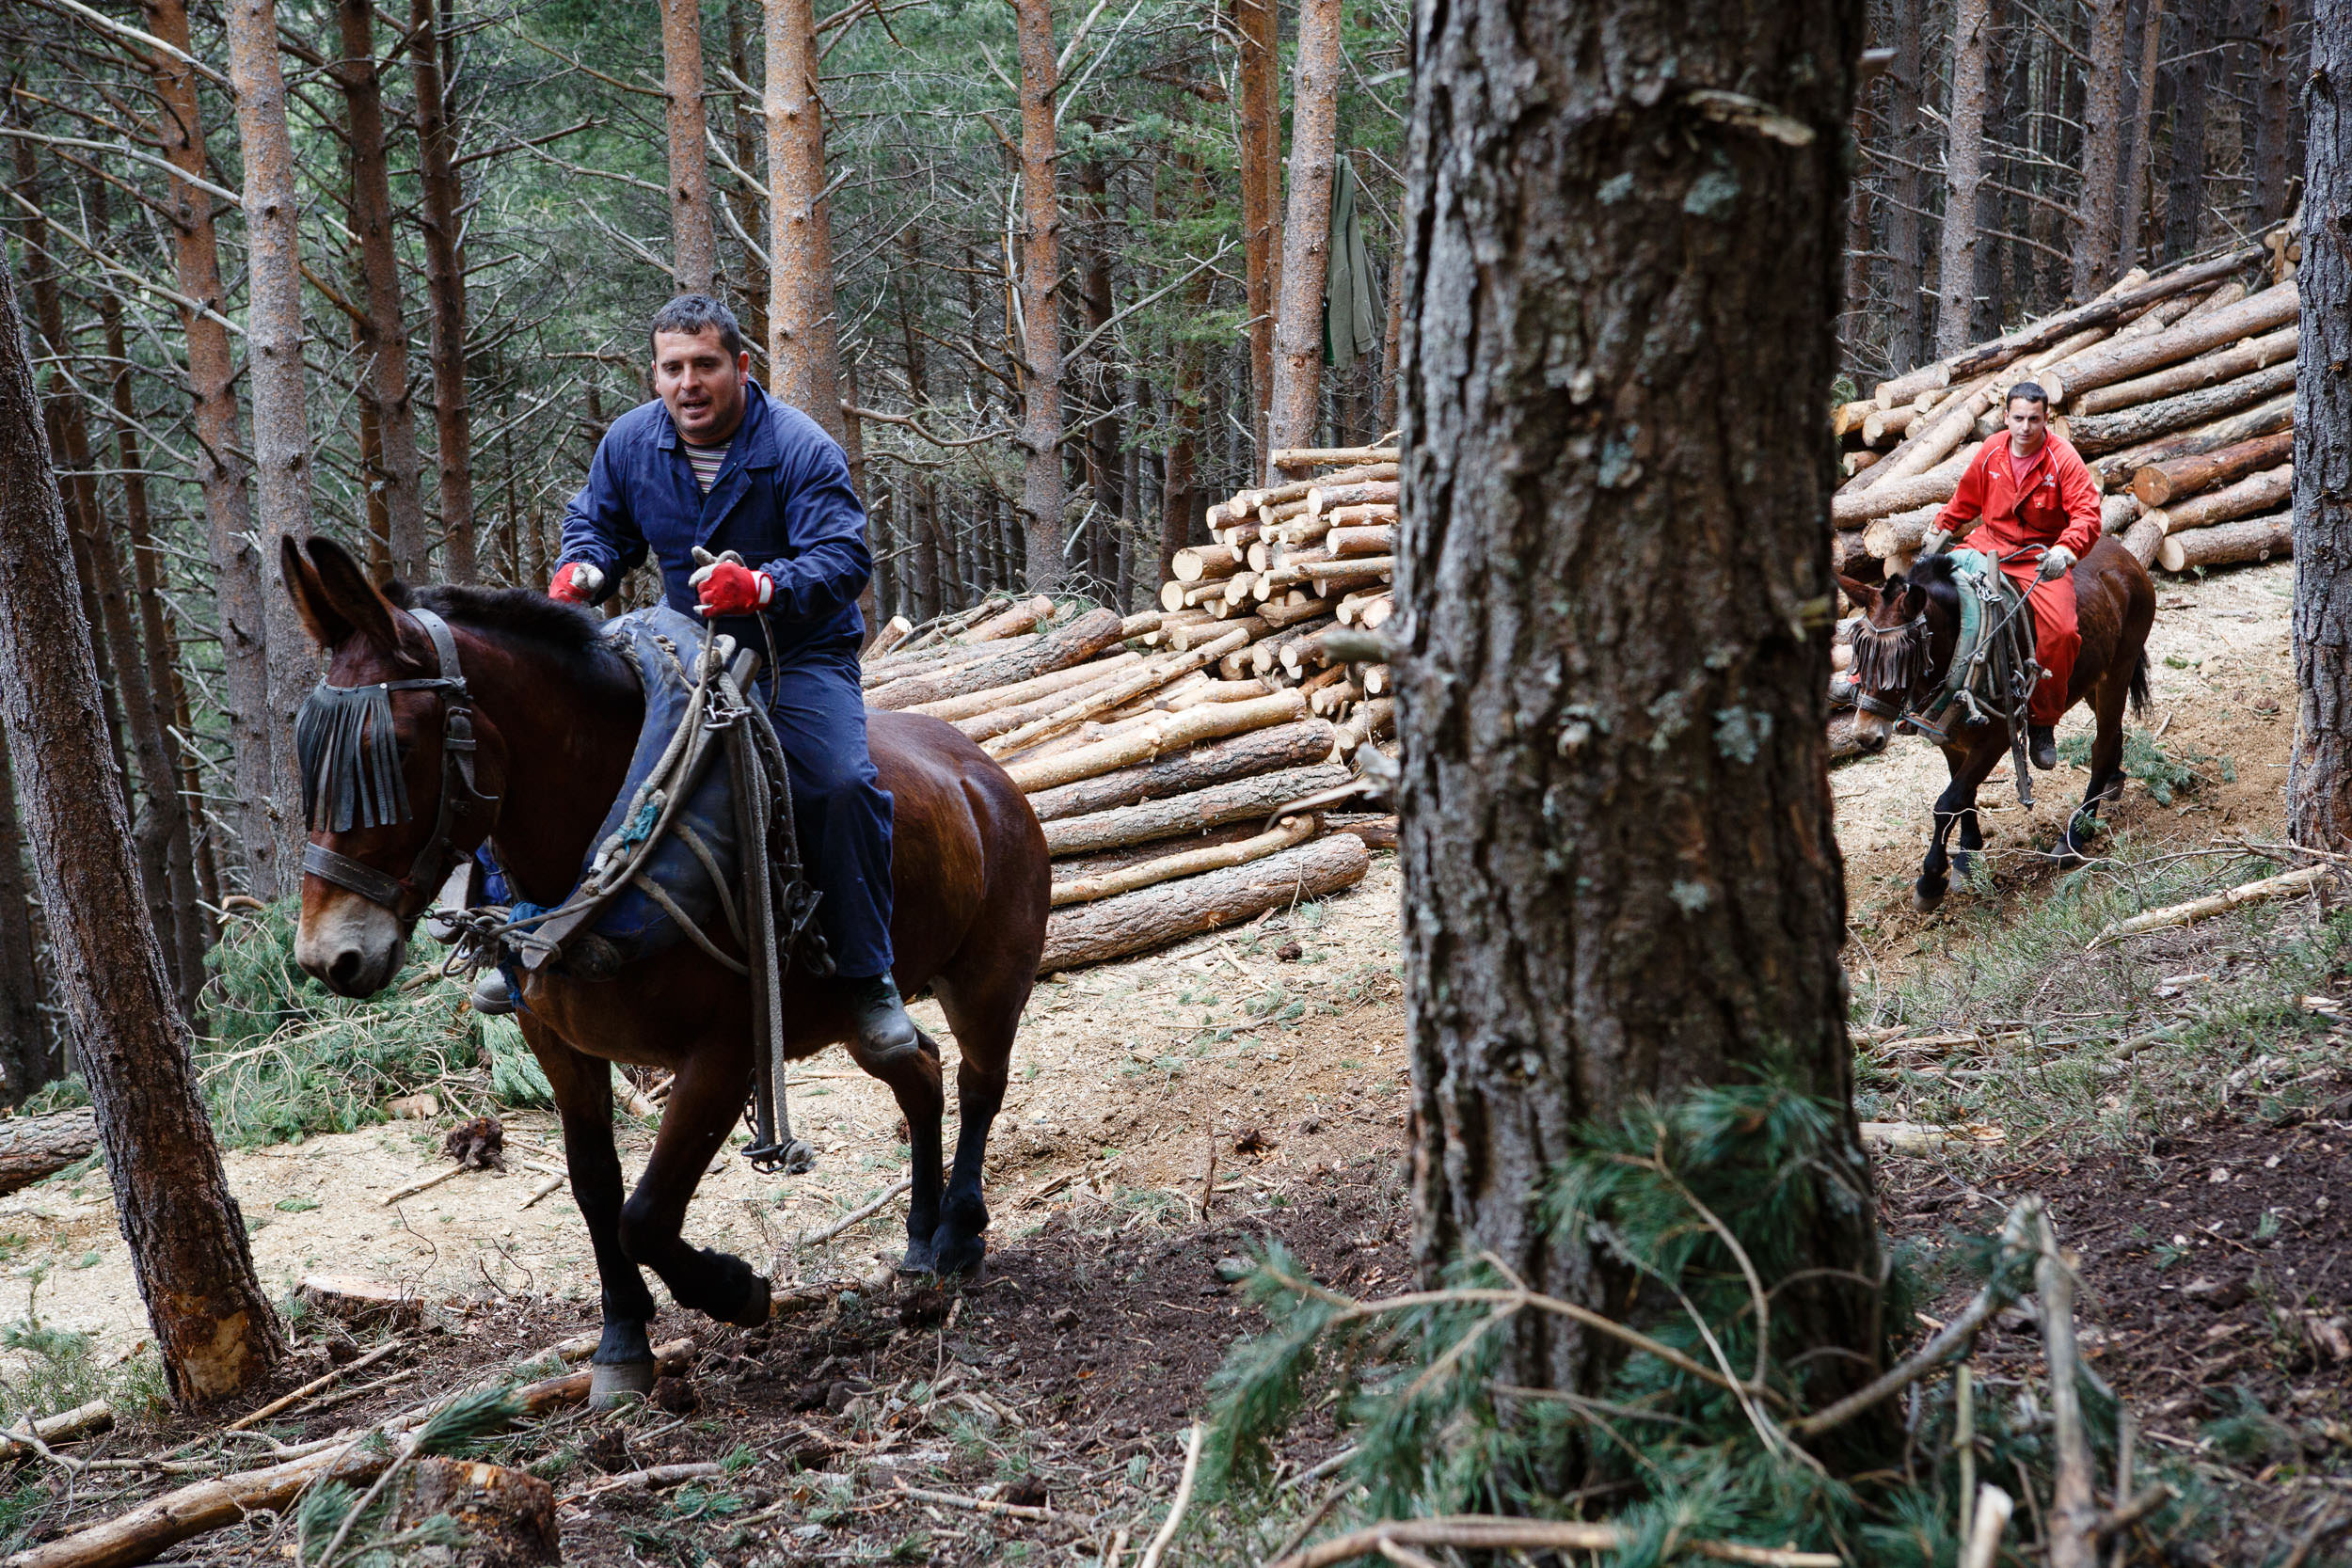 14/5/13 Mules dragging felled pine trunks during forest thinning, near Ezcaray, La Rioja, Spain. Removing trunks by mule causes less environmental damage to remaining forest than mechanical methods. Photo by James Sturcke | www.sturcke.org